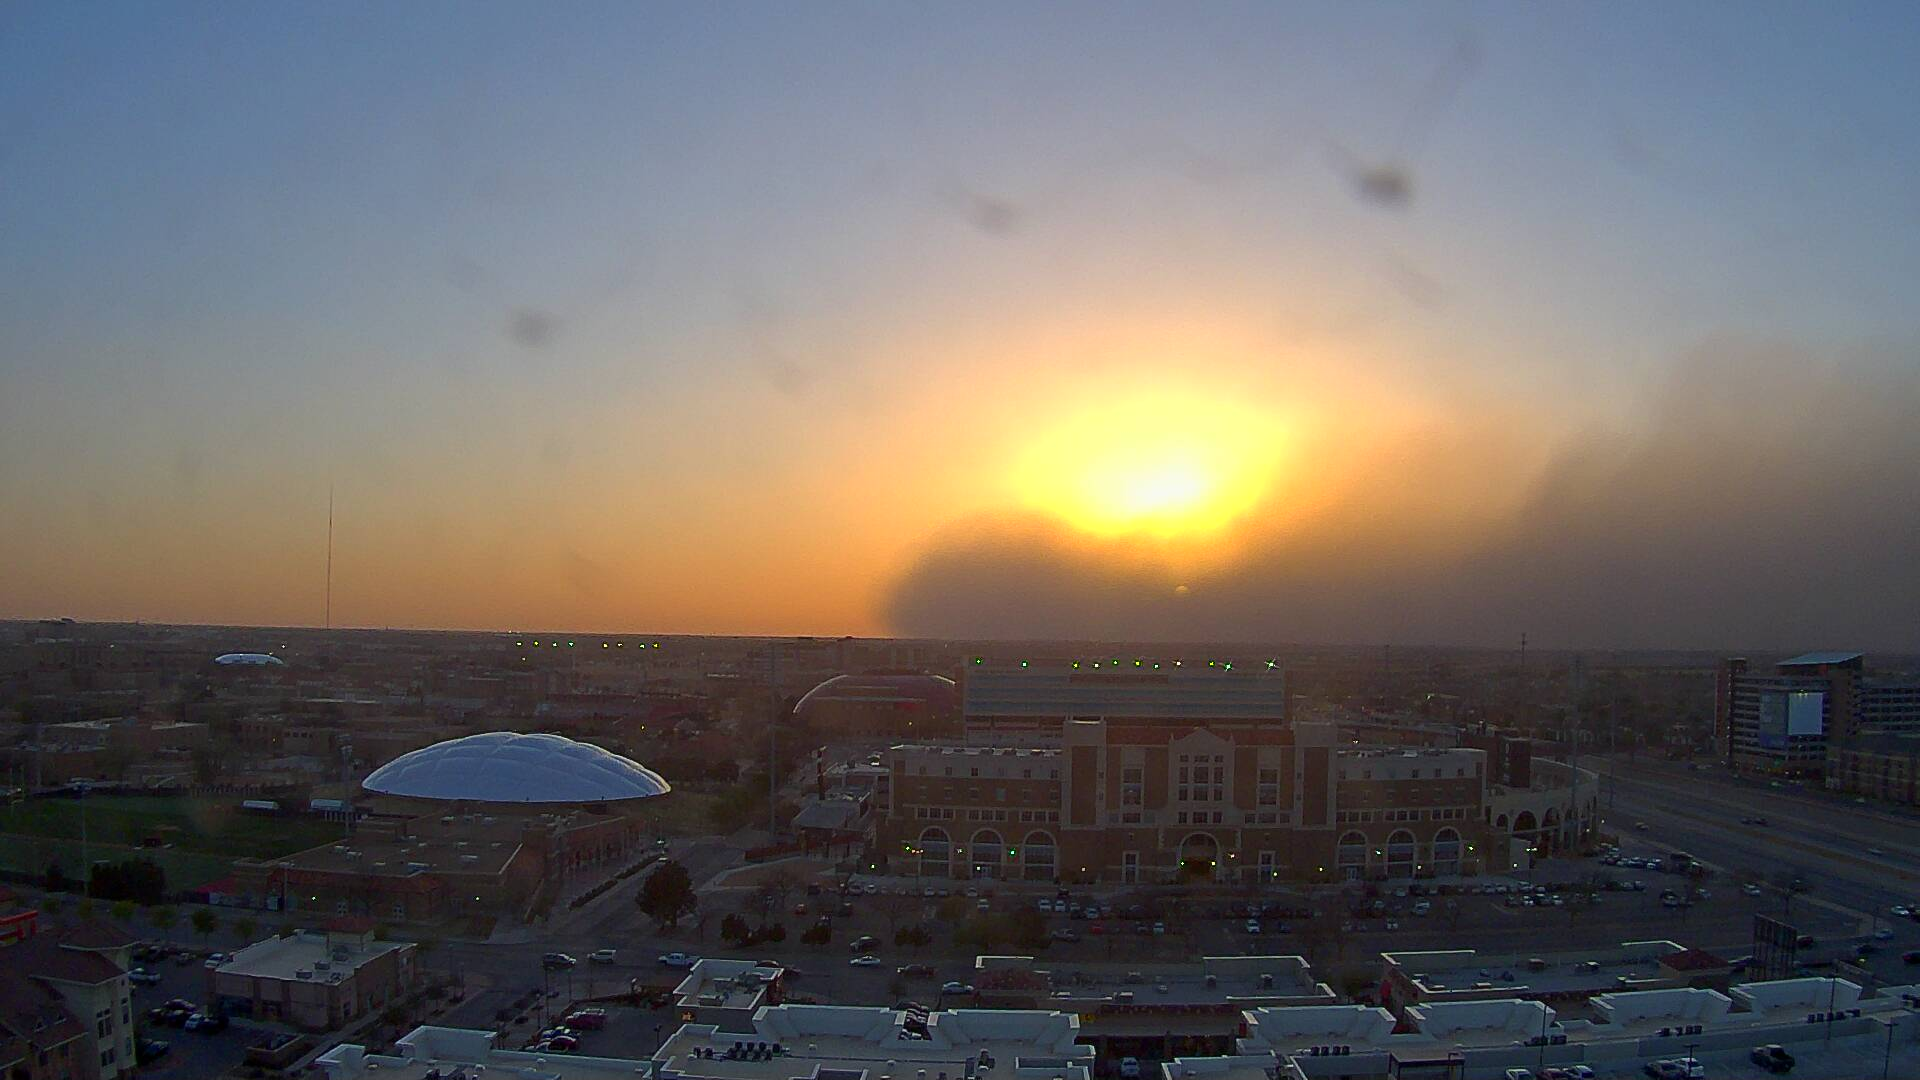 Picture of dust along the leading edge of a cold front as it was moving through Lubbock near sunset. The image was captured from the Overton Hotel, looking west at 8 pm. The picture is courtesy of KAMC.